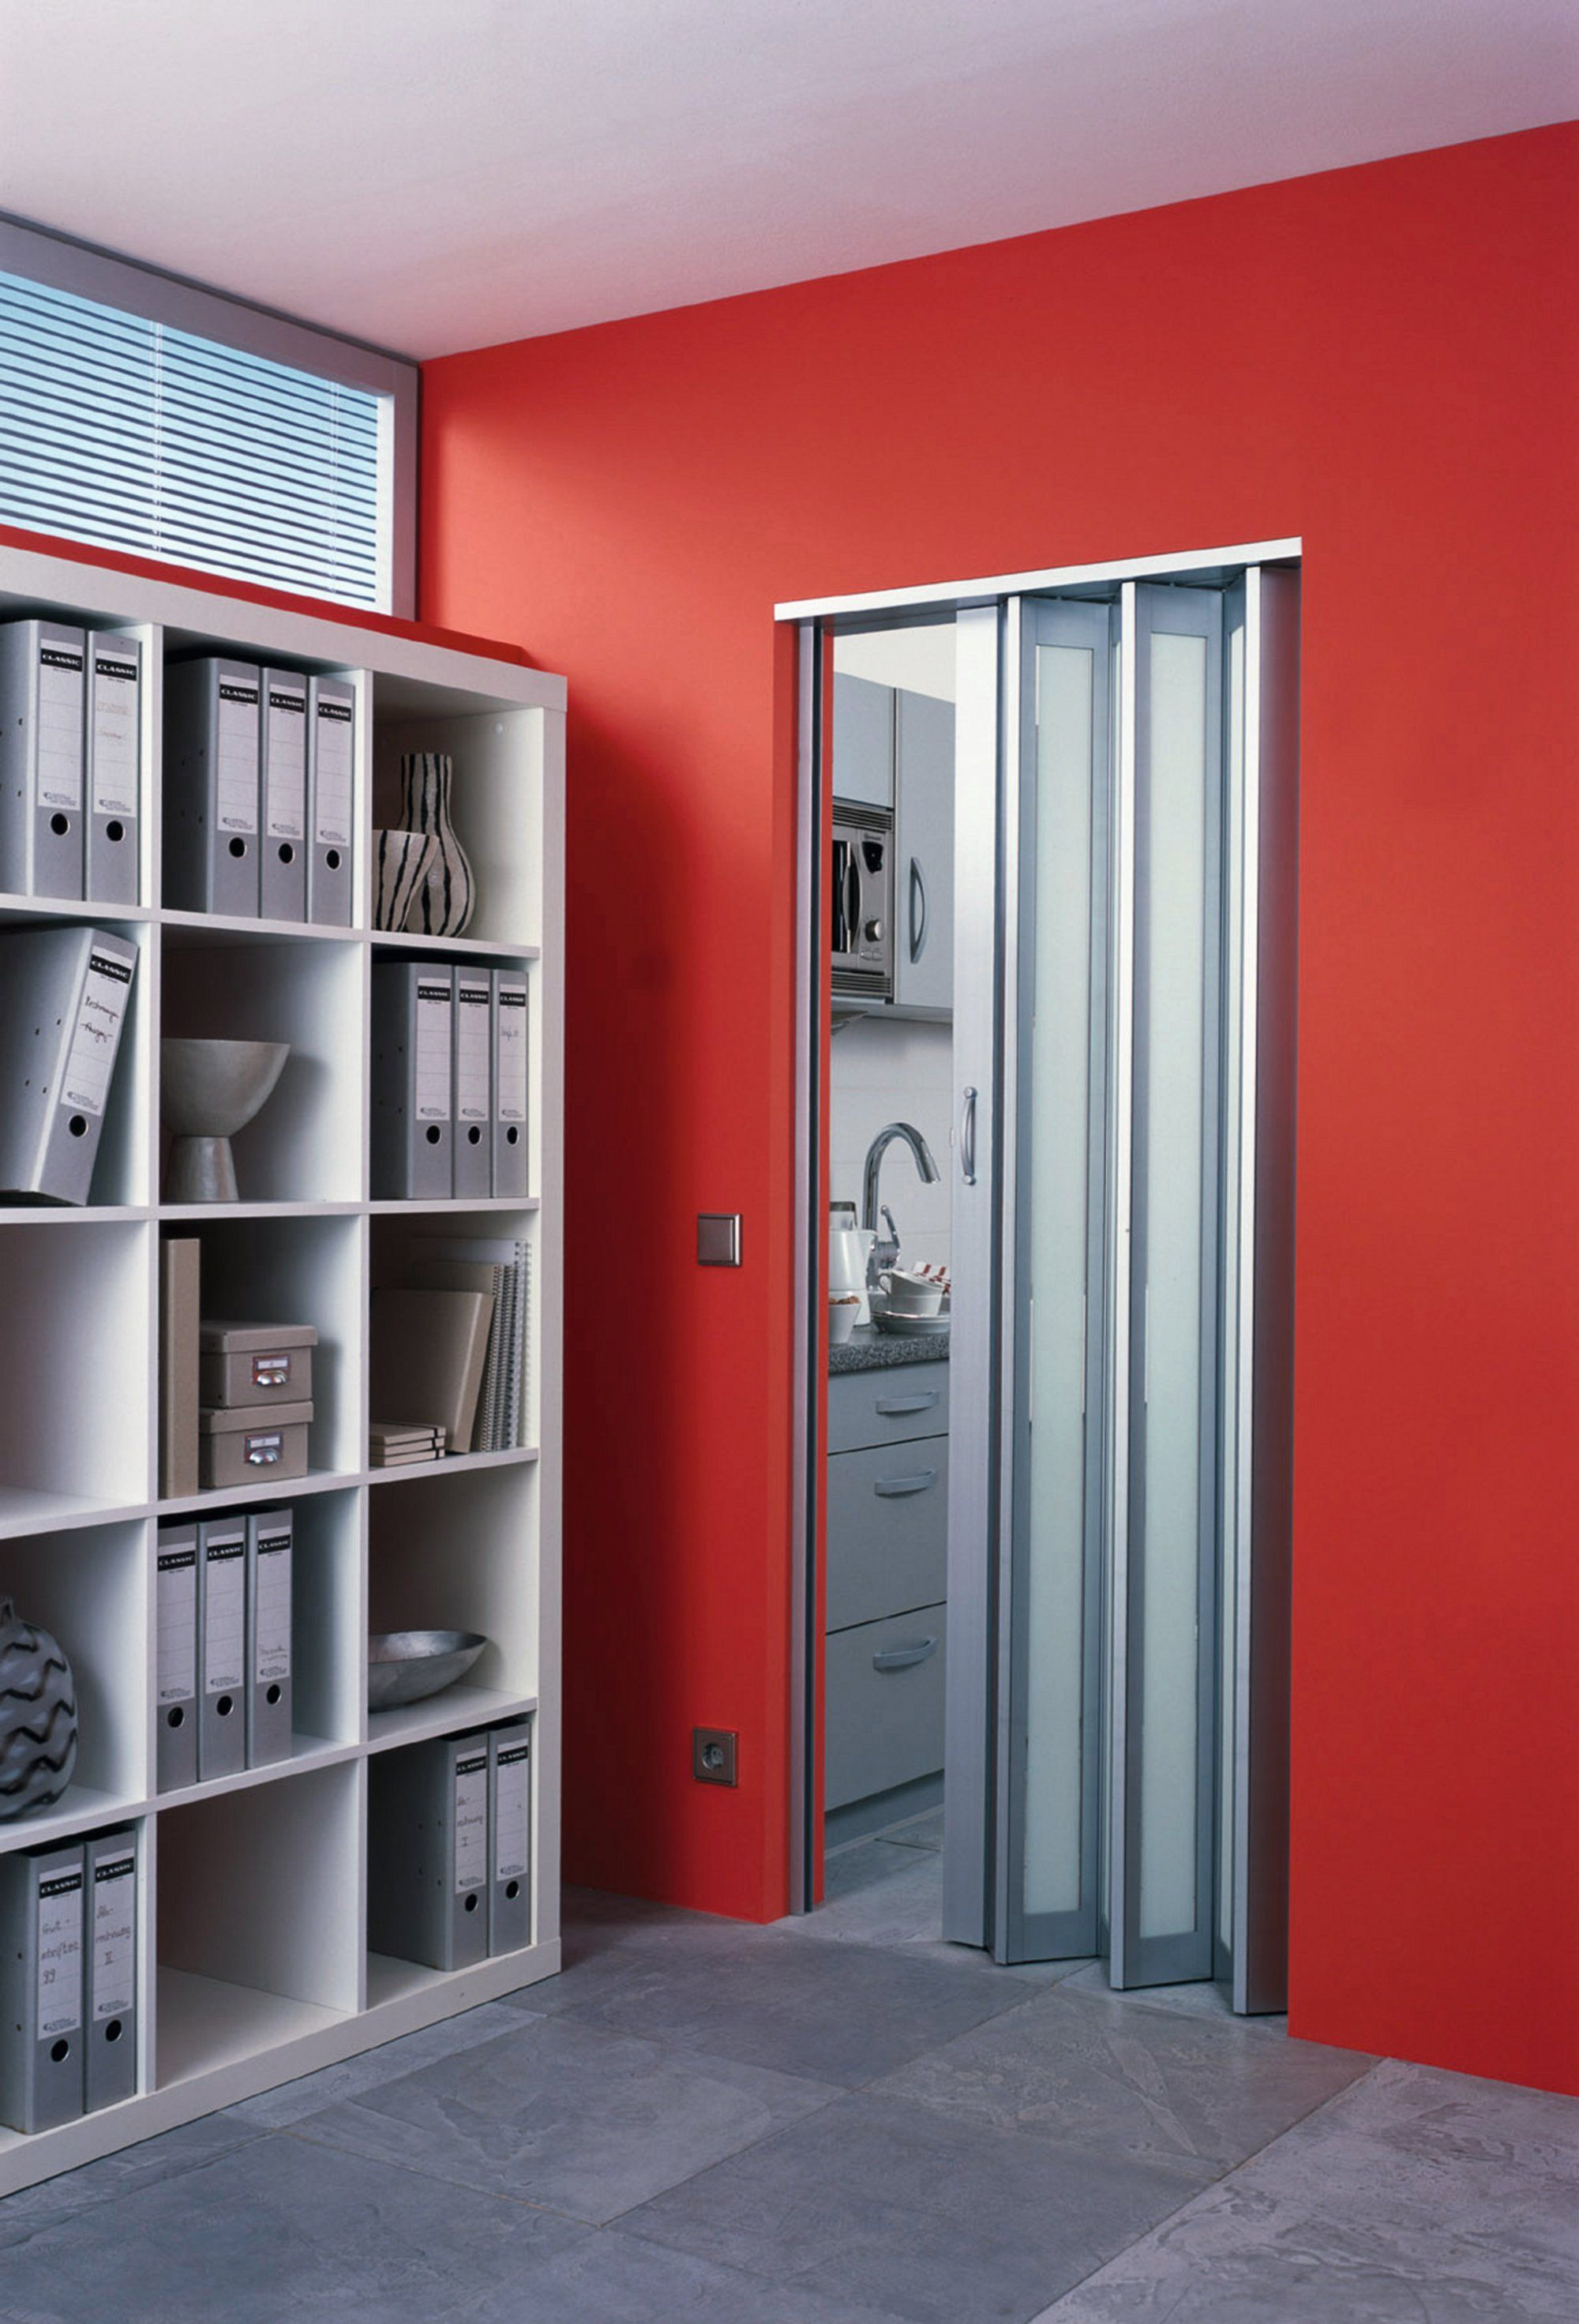 Ultra Modern In Style Halo Aluminum Accordion Door From The Panelfold Nuvo Designer Series Gallery Room Divider